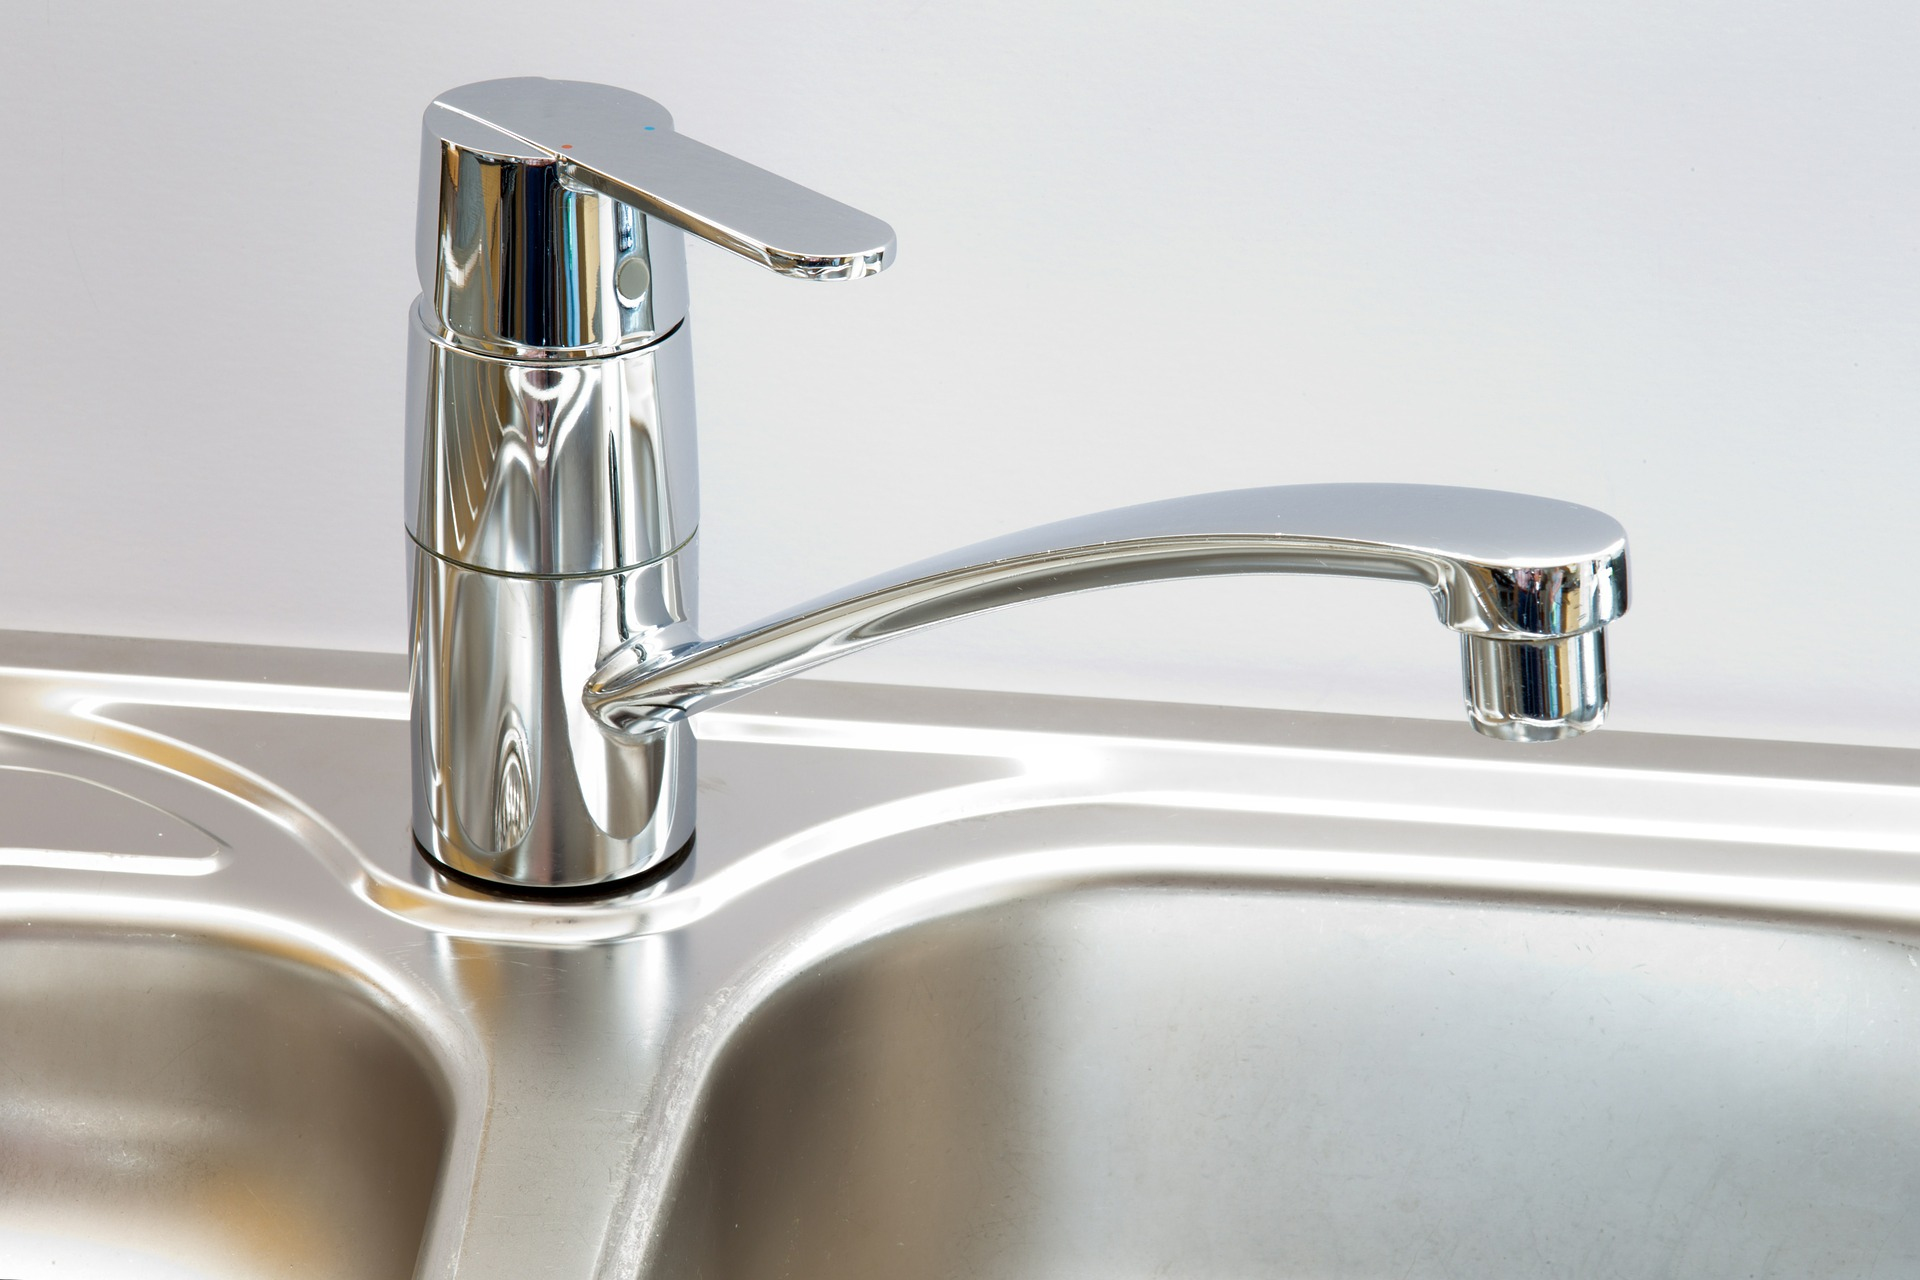 The benefits of soft water